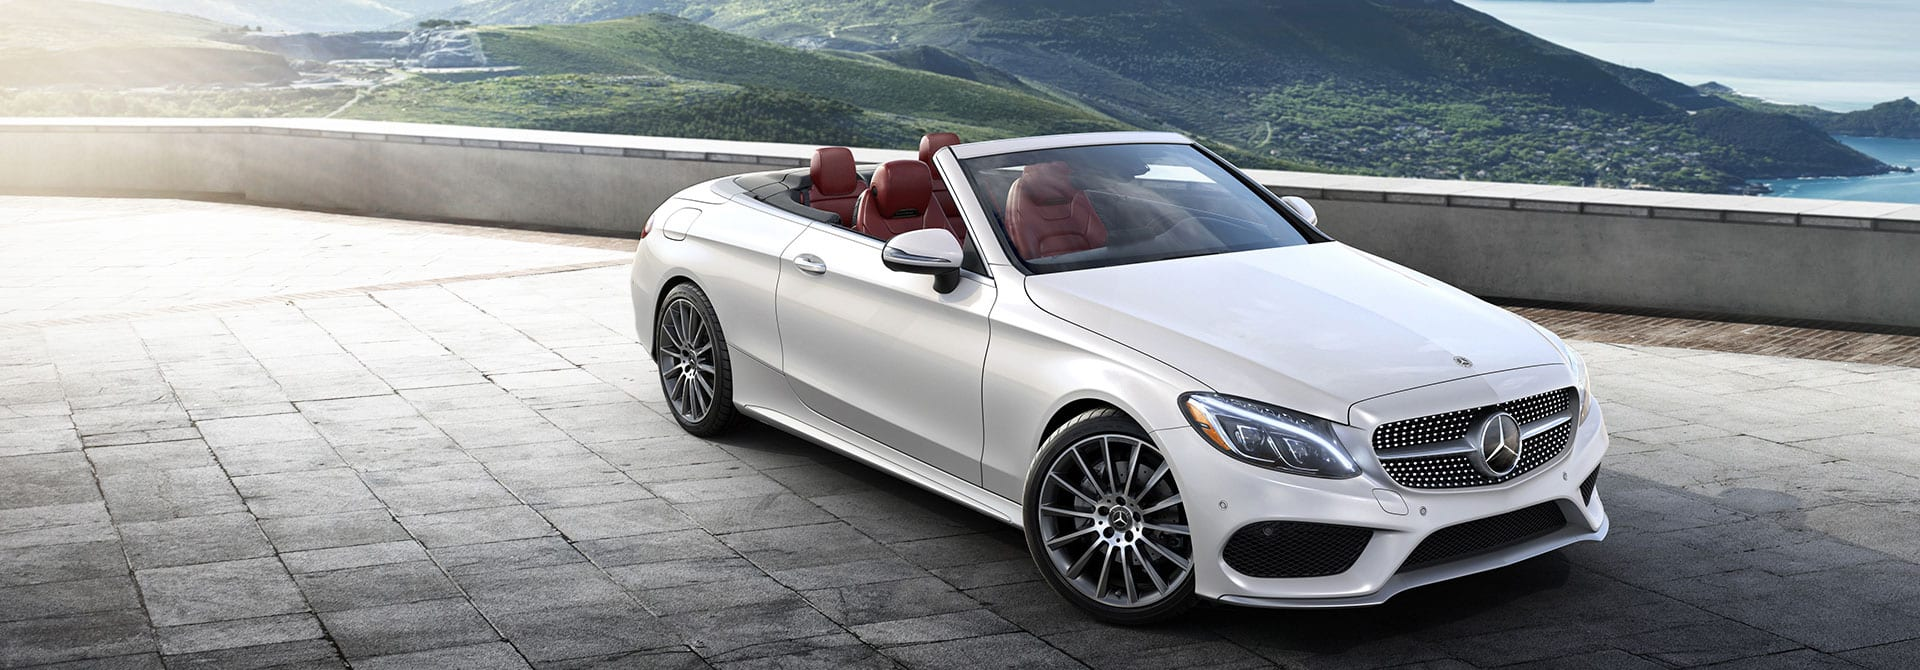 Location Mercedes AMG GT Roadster | Deluxe Rental Cars Lausanne